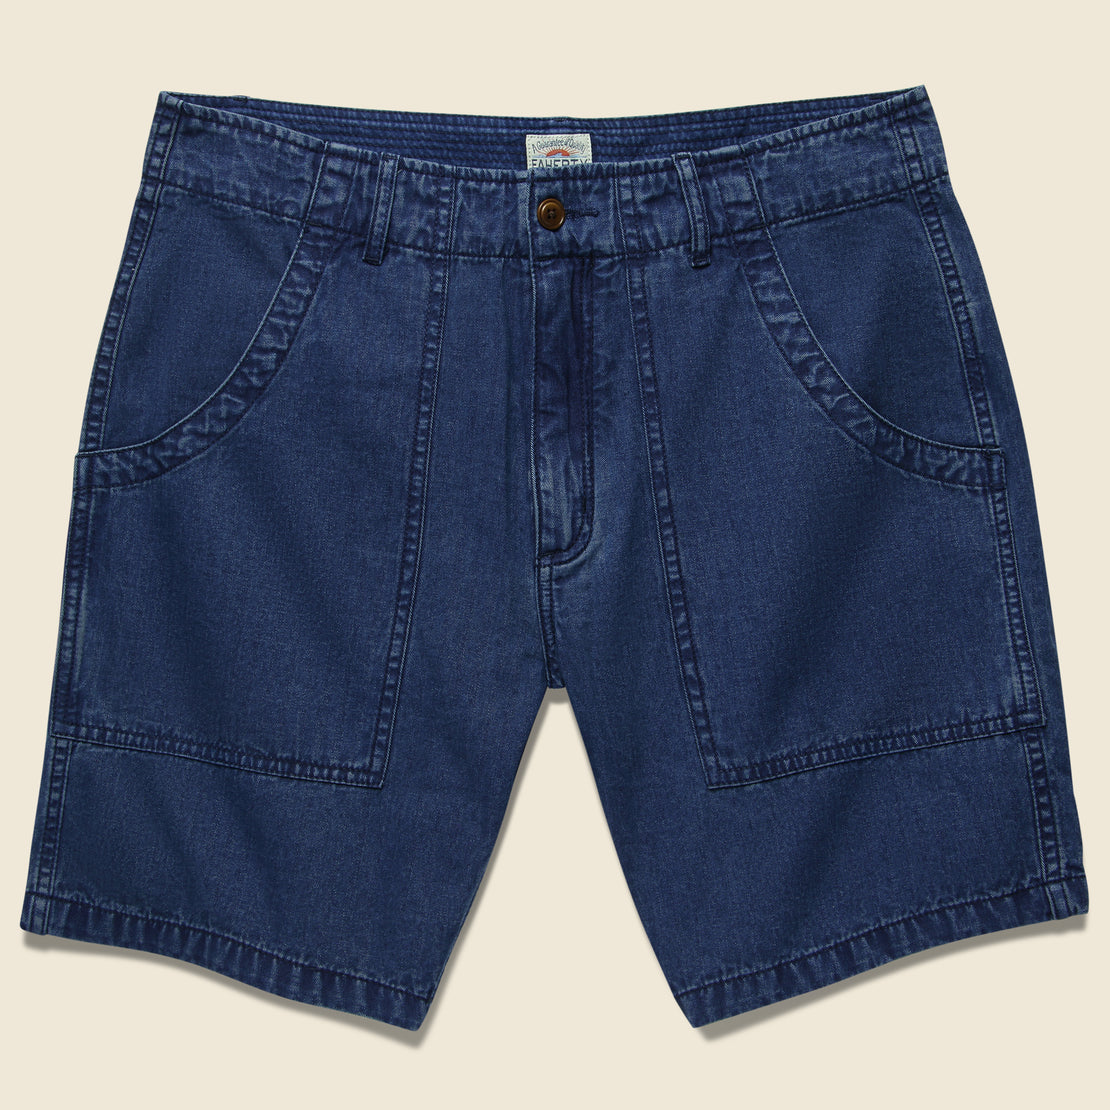 Faherty Camp Short - Washed Indigo Herringbone